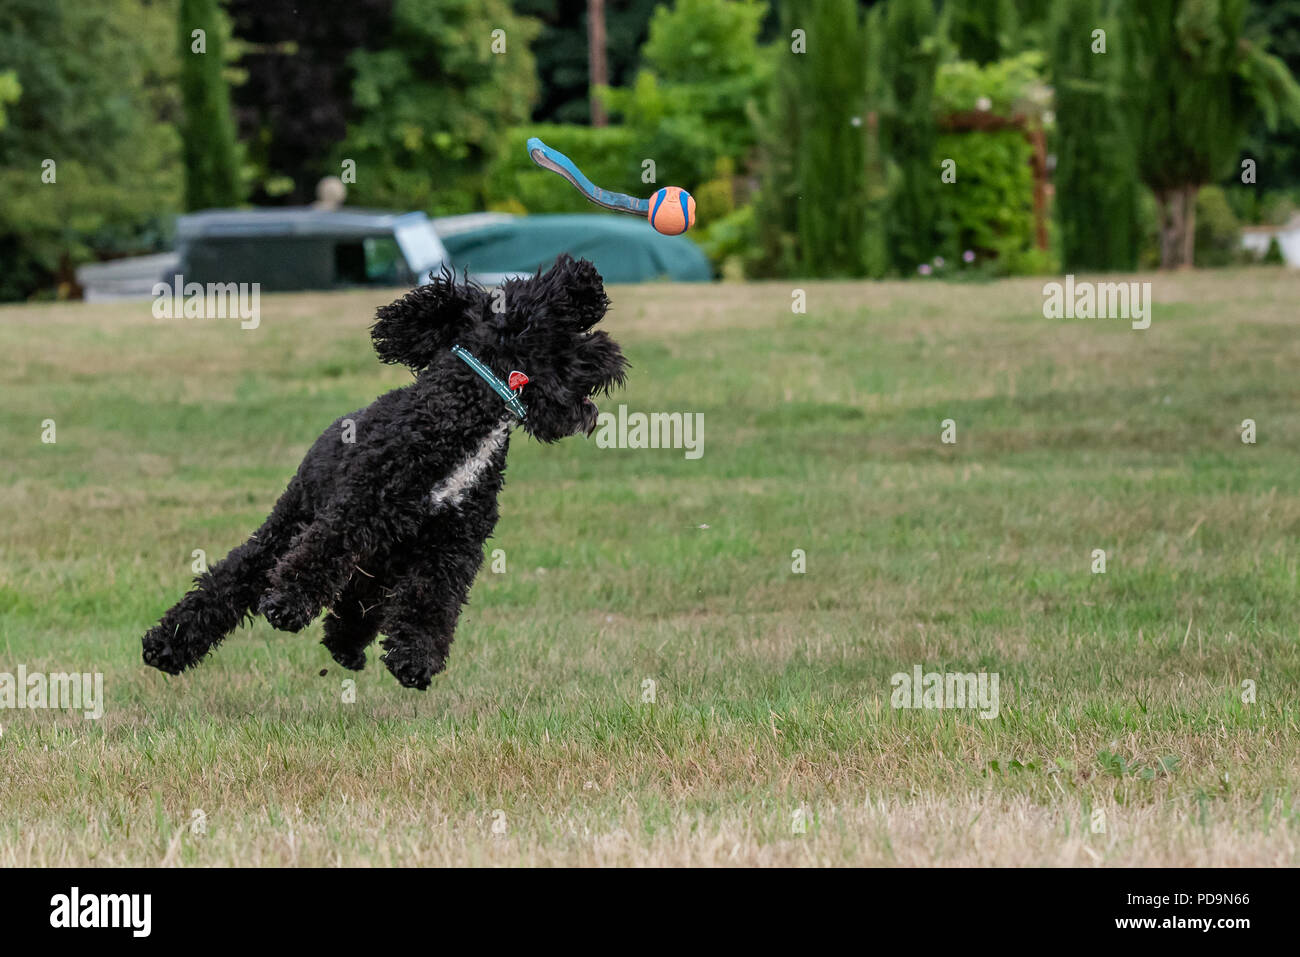 cockerpoo for jumping for a ball - Stock Image